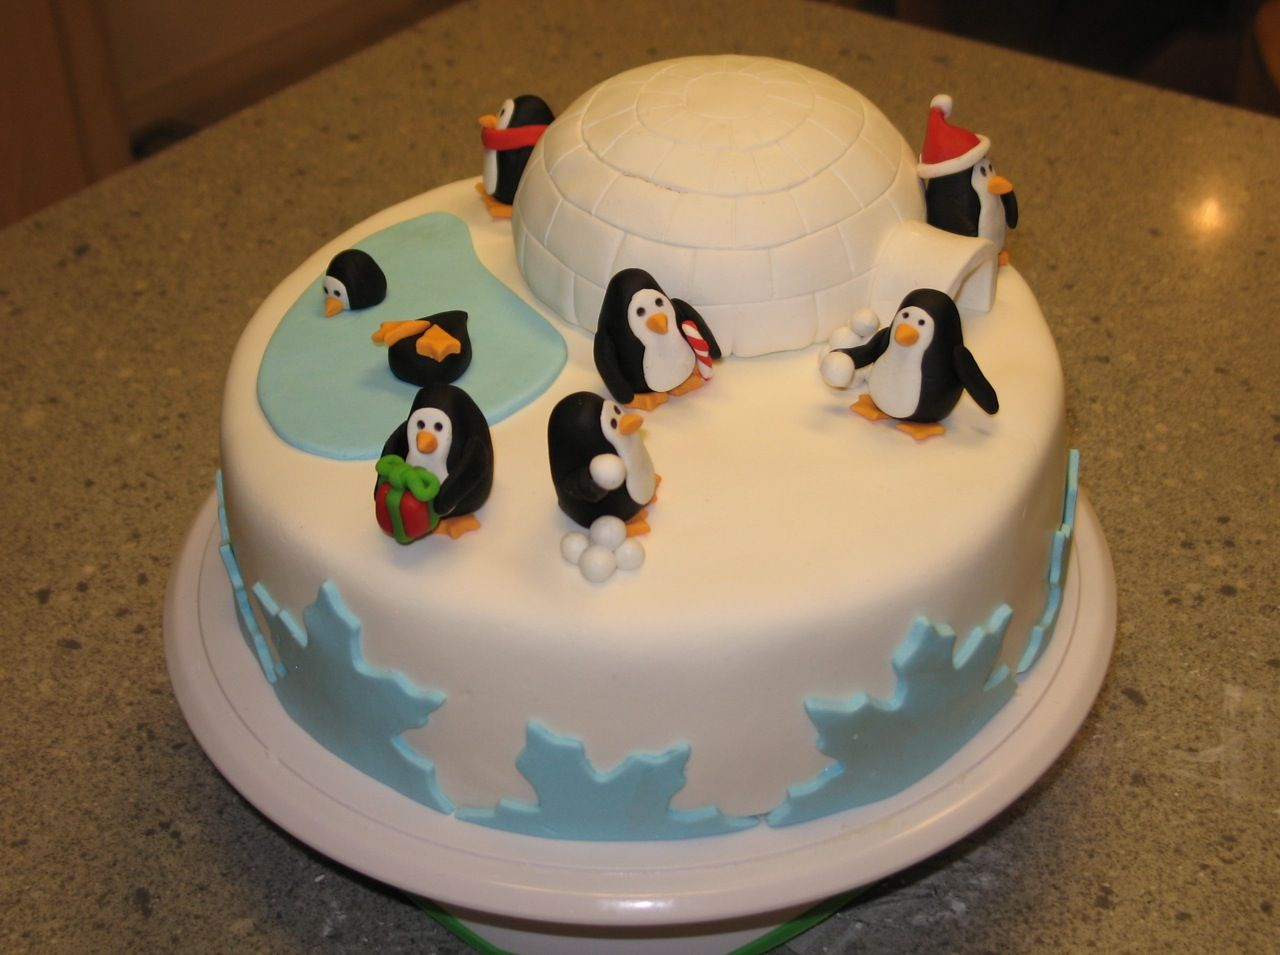 Penguin Shaped Birthday Cake Recipe